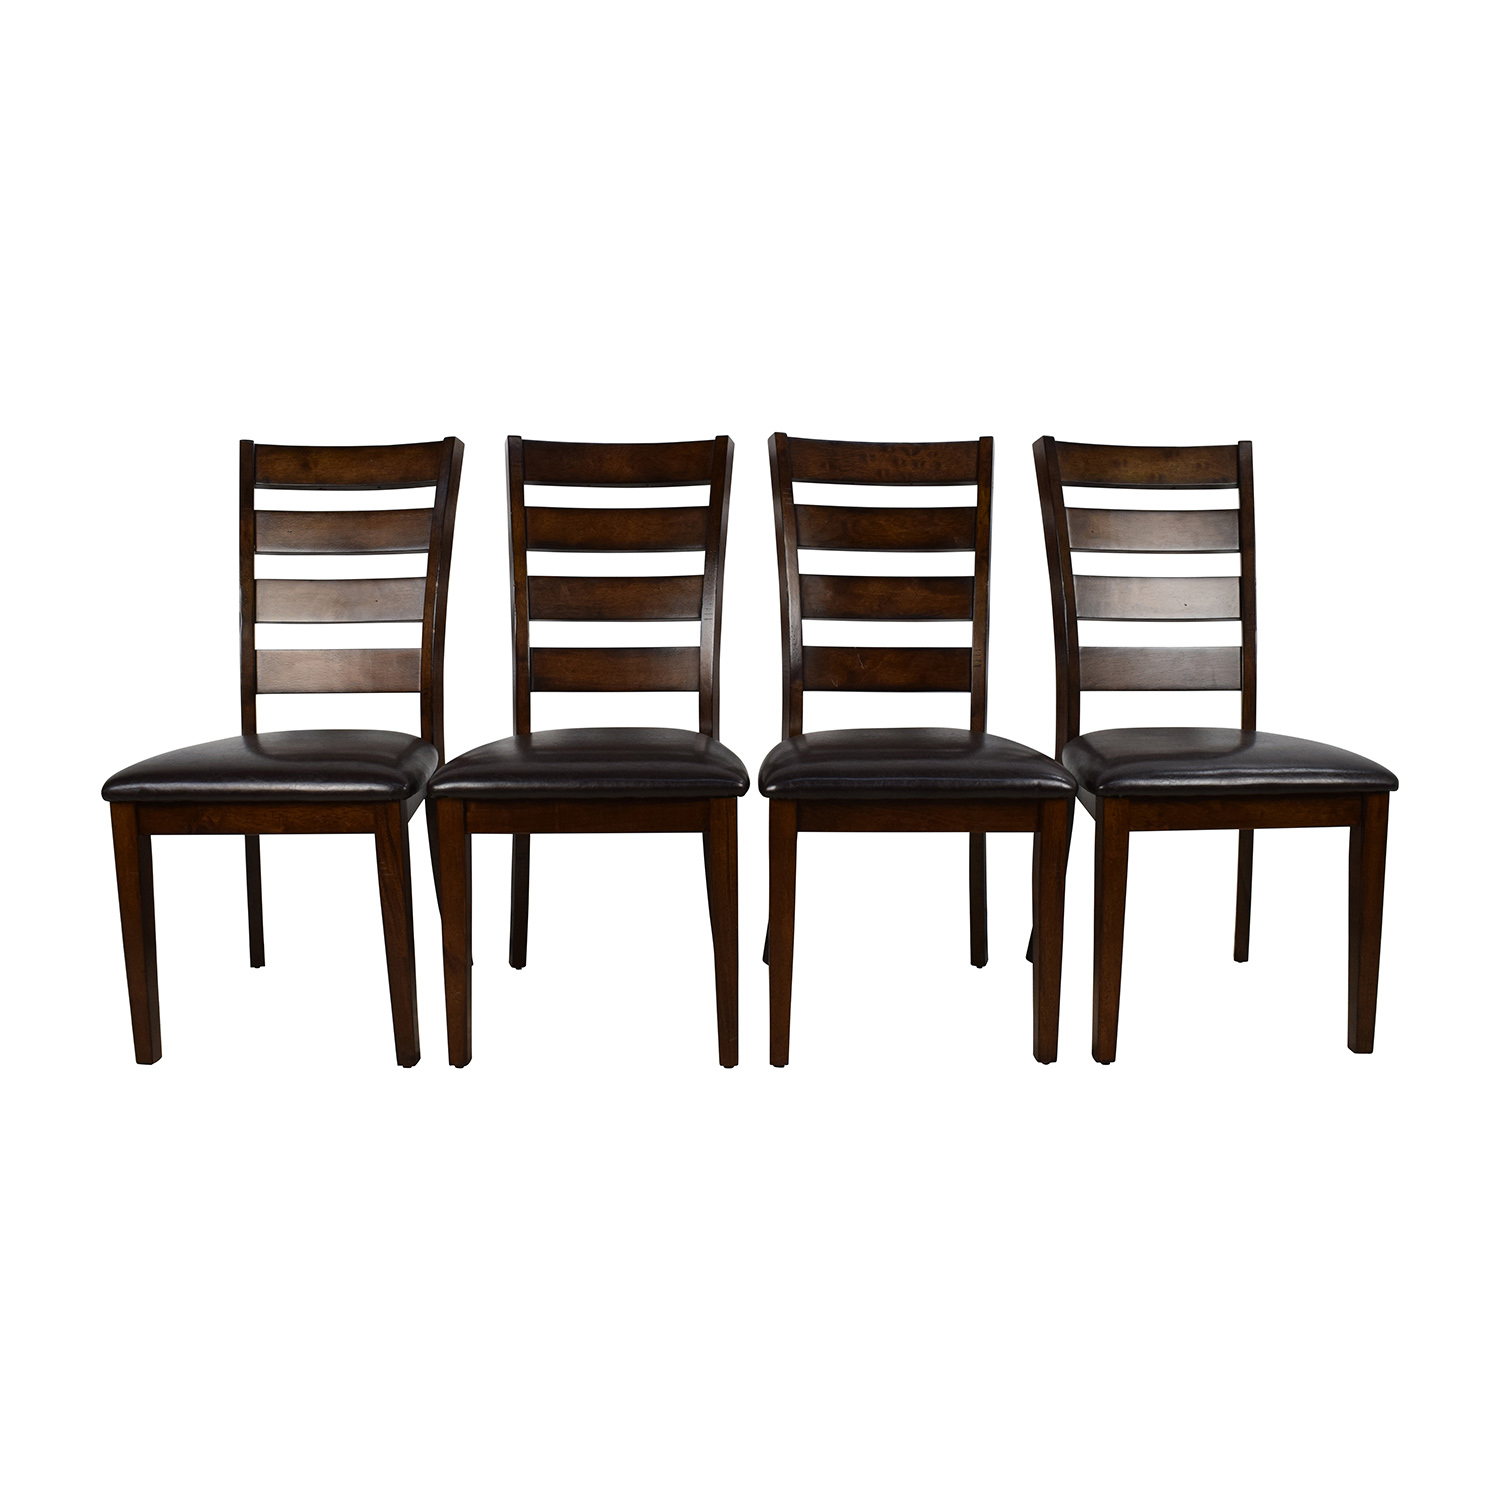 Raymour Flanigan Raymour & Flanigan Kona Dining Chairs coupon